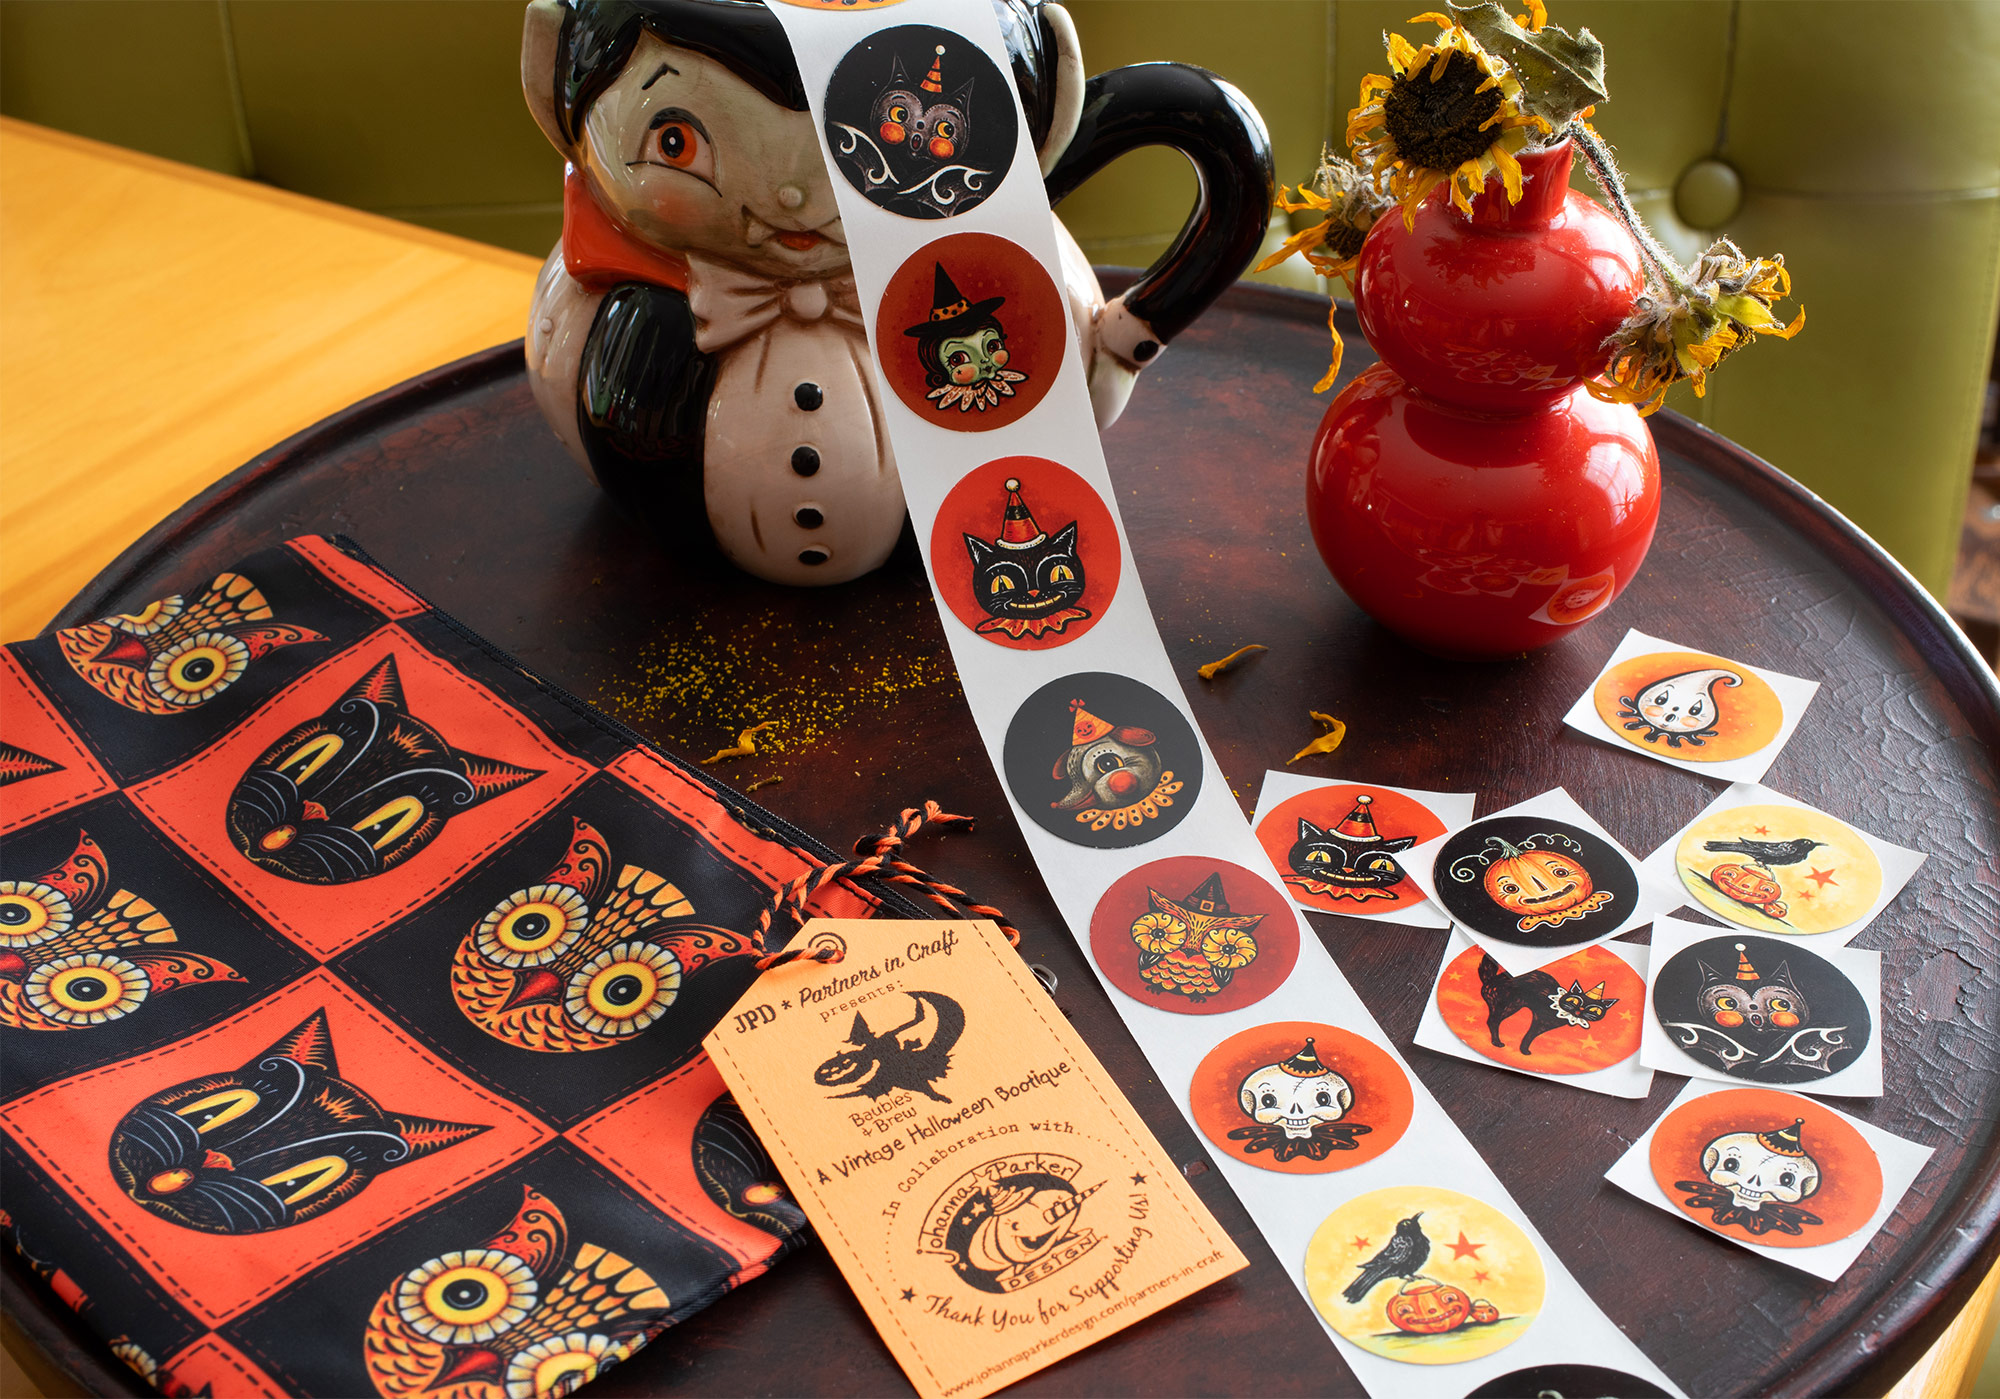 Collect & Craft with Johanna's Halloween stickers featuring her illustrations. Available thru the Vintage Halloween Store collaboration, order these in sets of 10 unique designs. Choose your favorite Halloween zipper pouch to keep them in! What a fun gift for any  JPD Halloween fan!